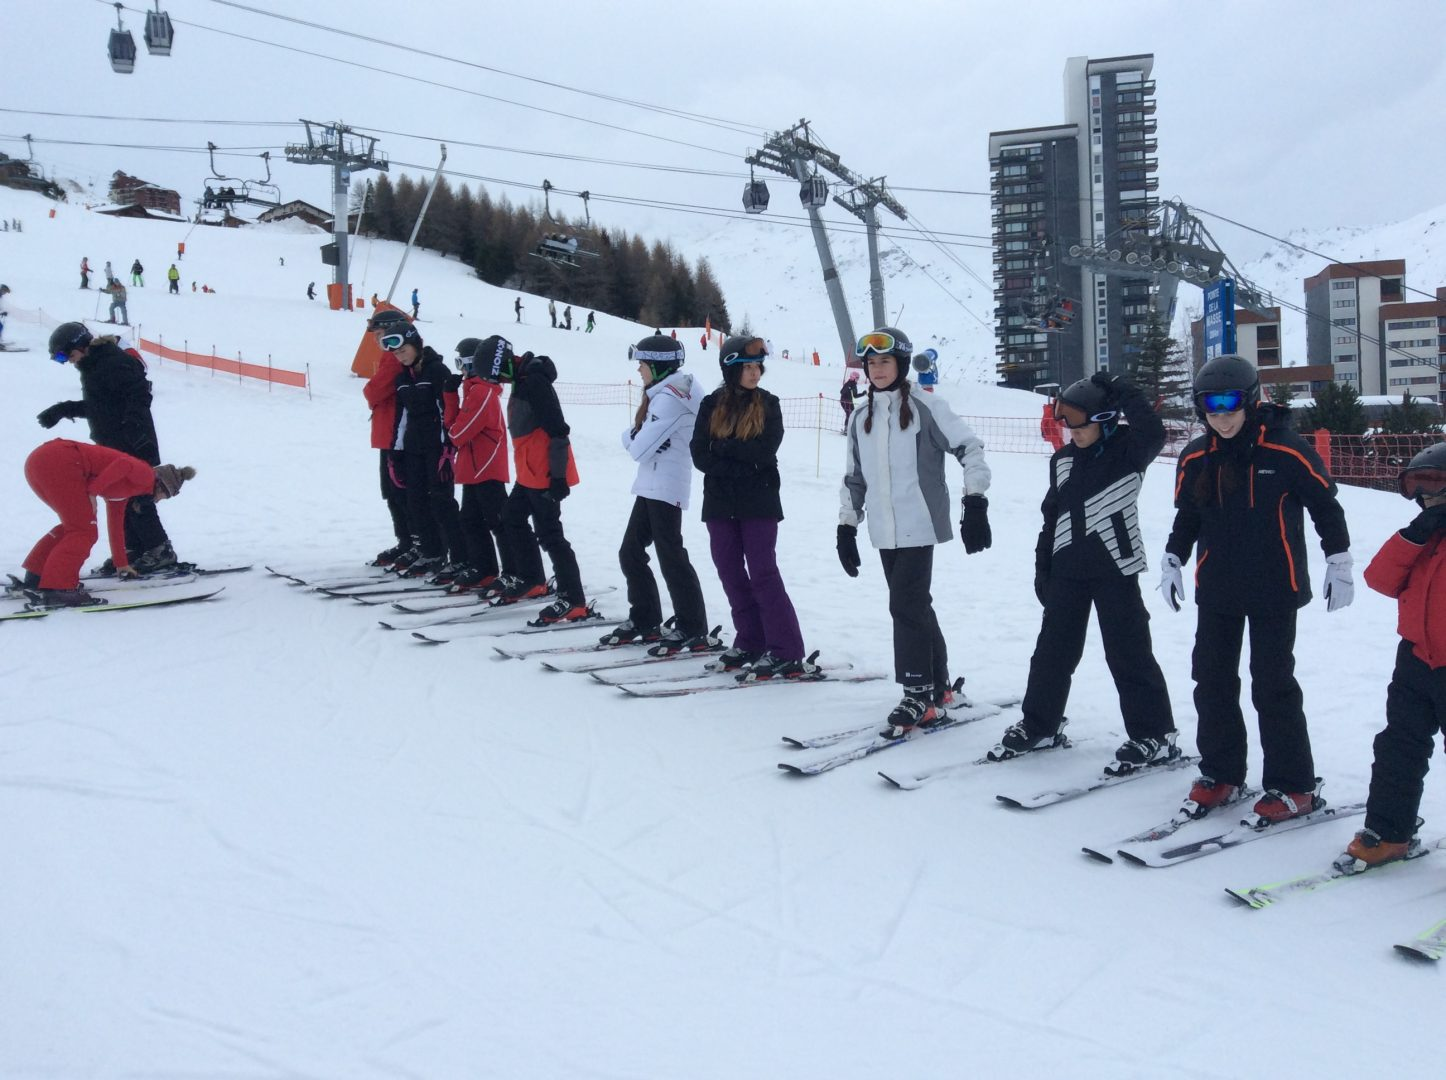 Les Menuires Senior School Ski Trip - Day 2